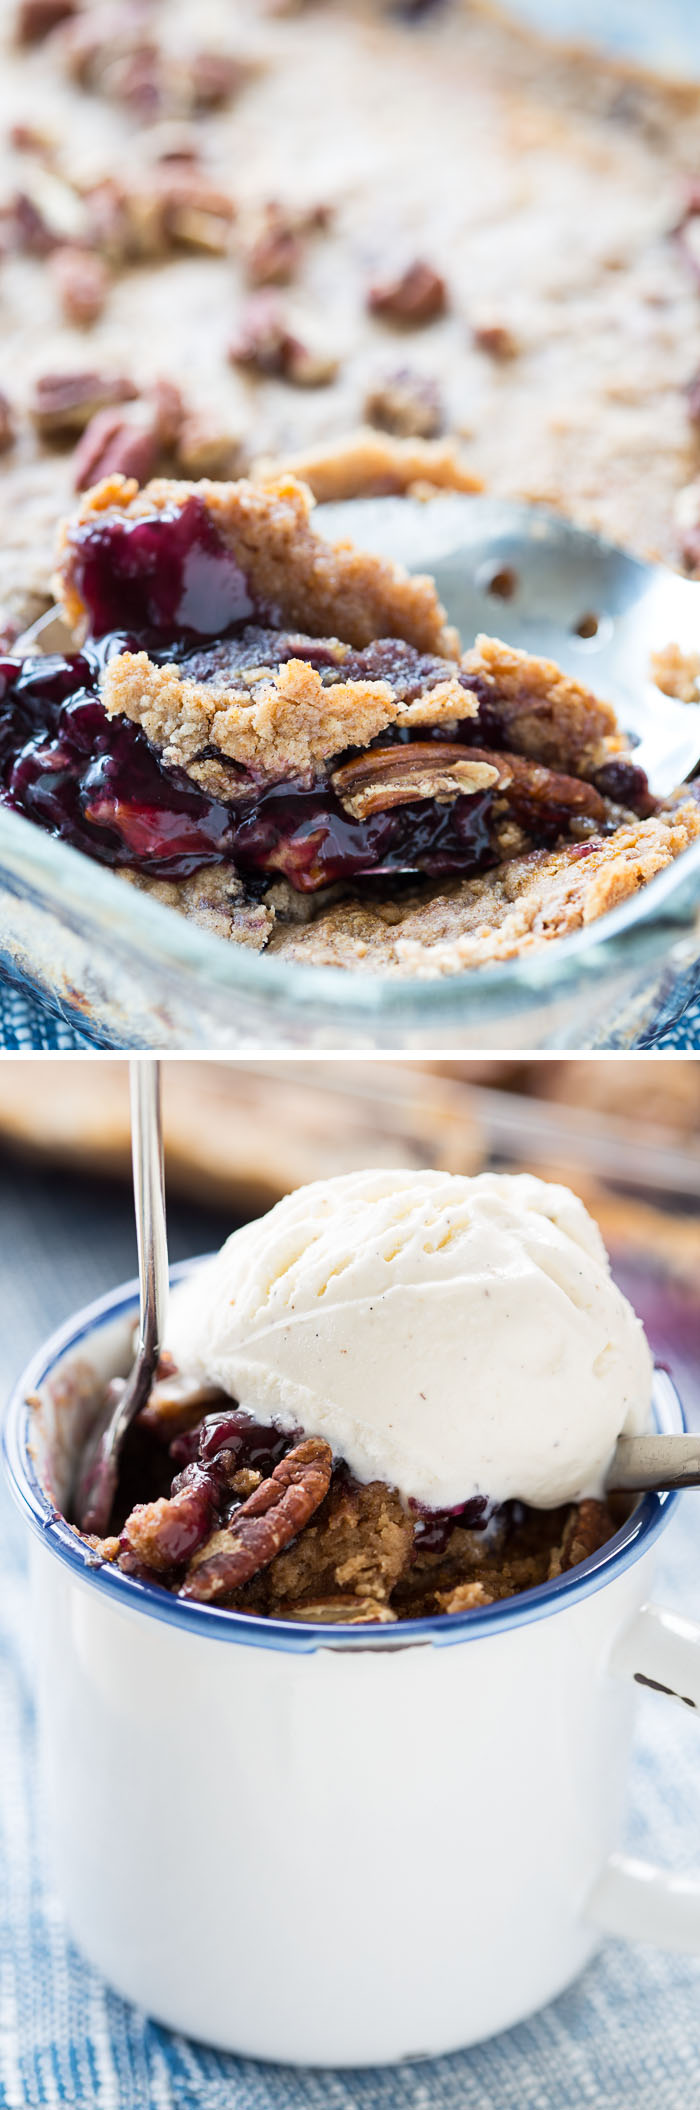 4-Ingredient Blueberry Cobbler Dump Cake